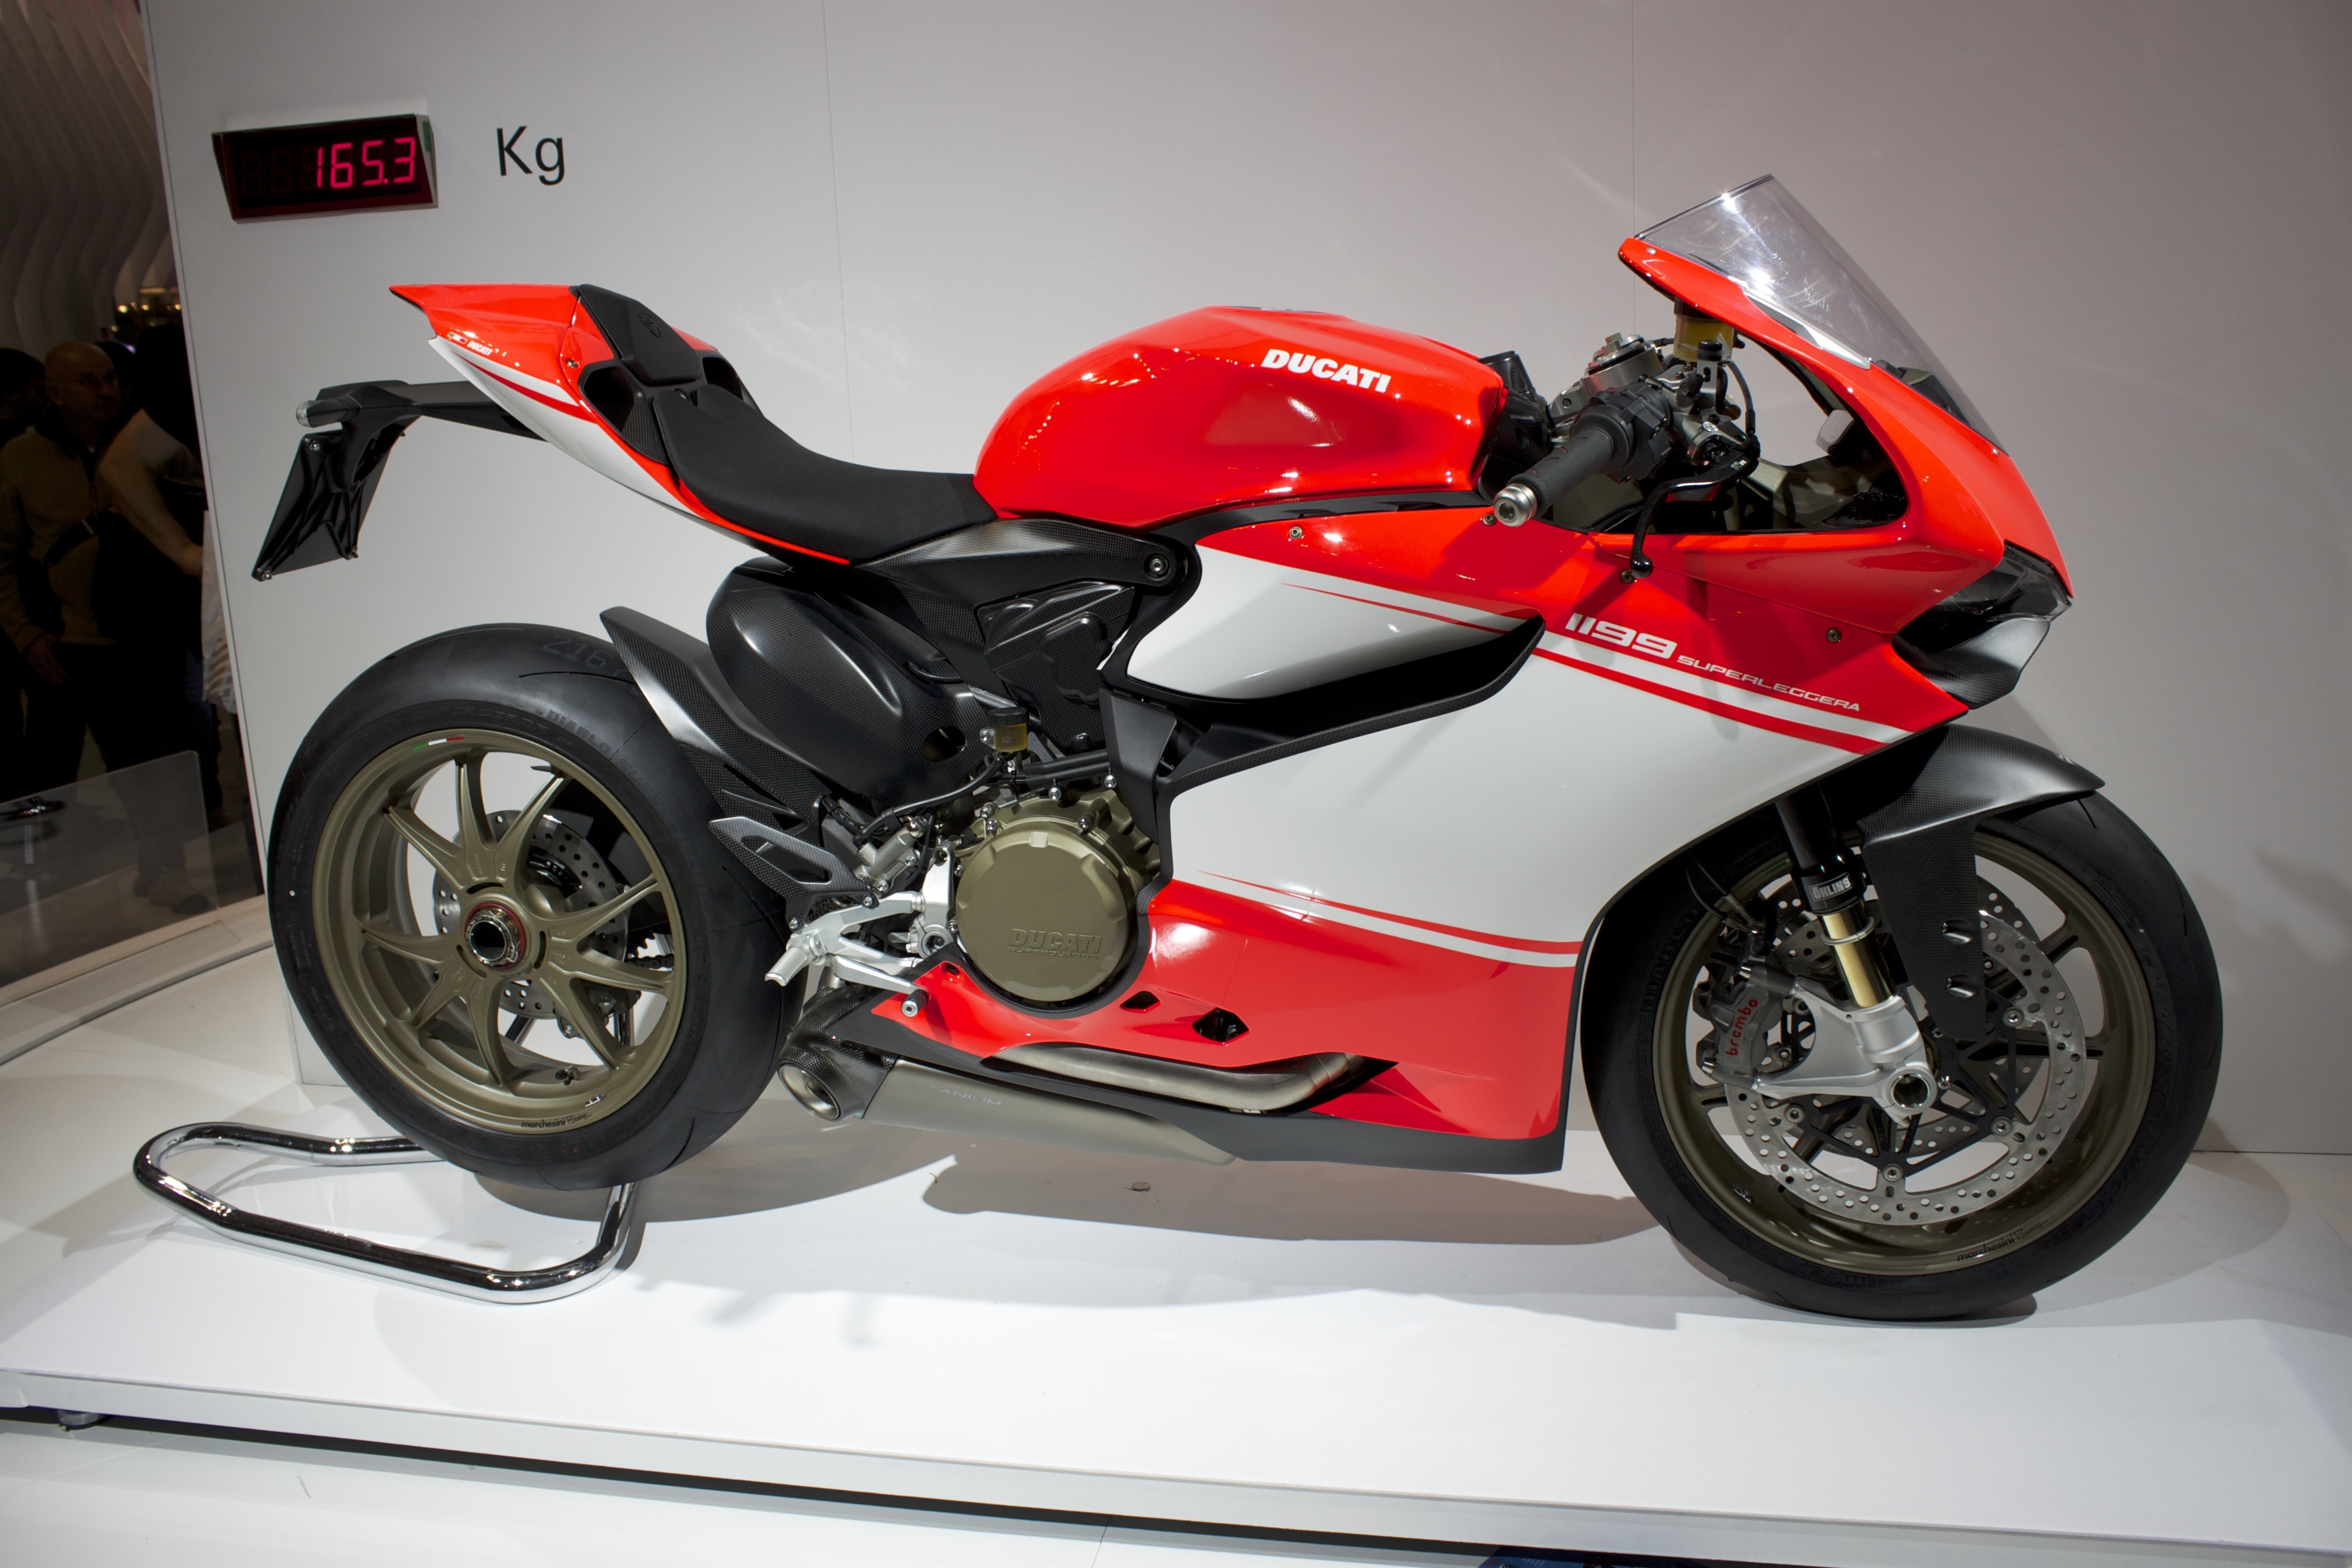 File:Ducati 1199 Superleggera (10760373606).jpg